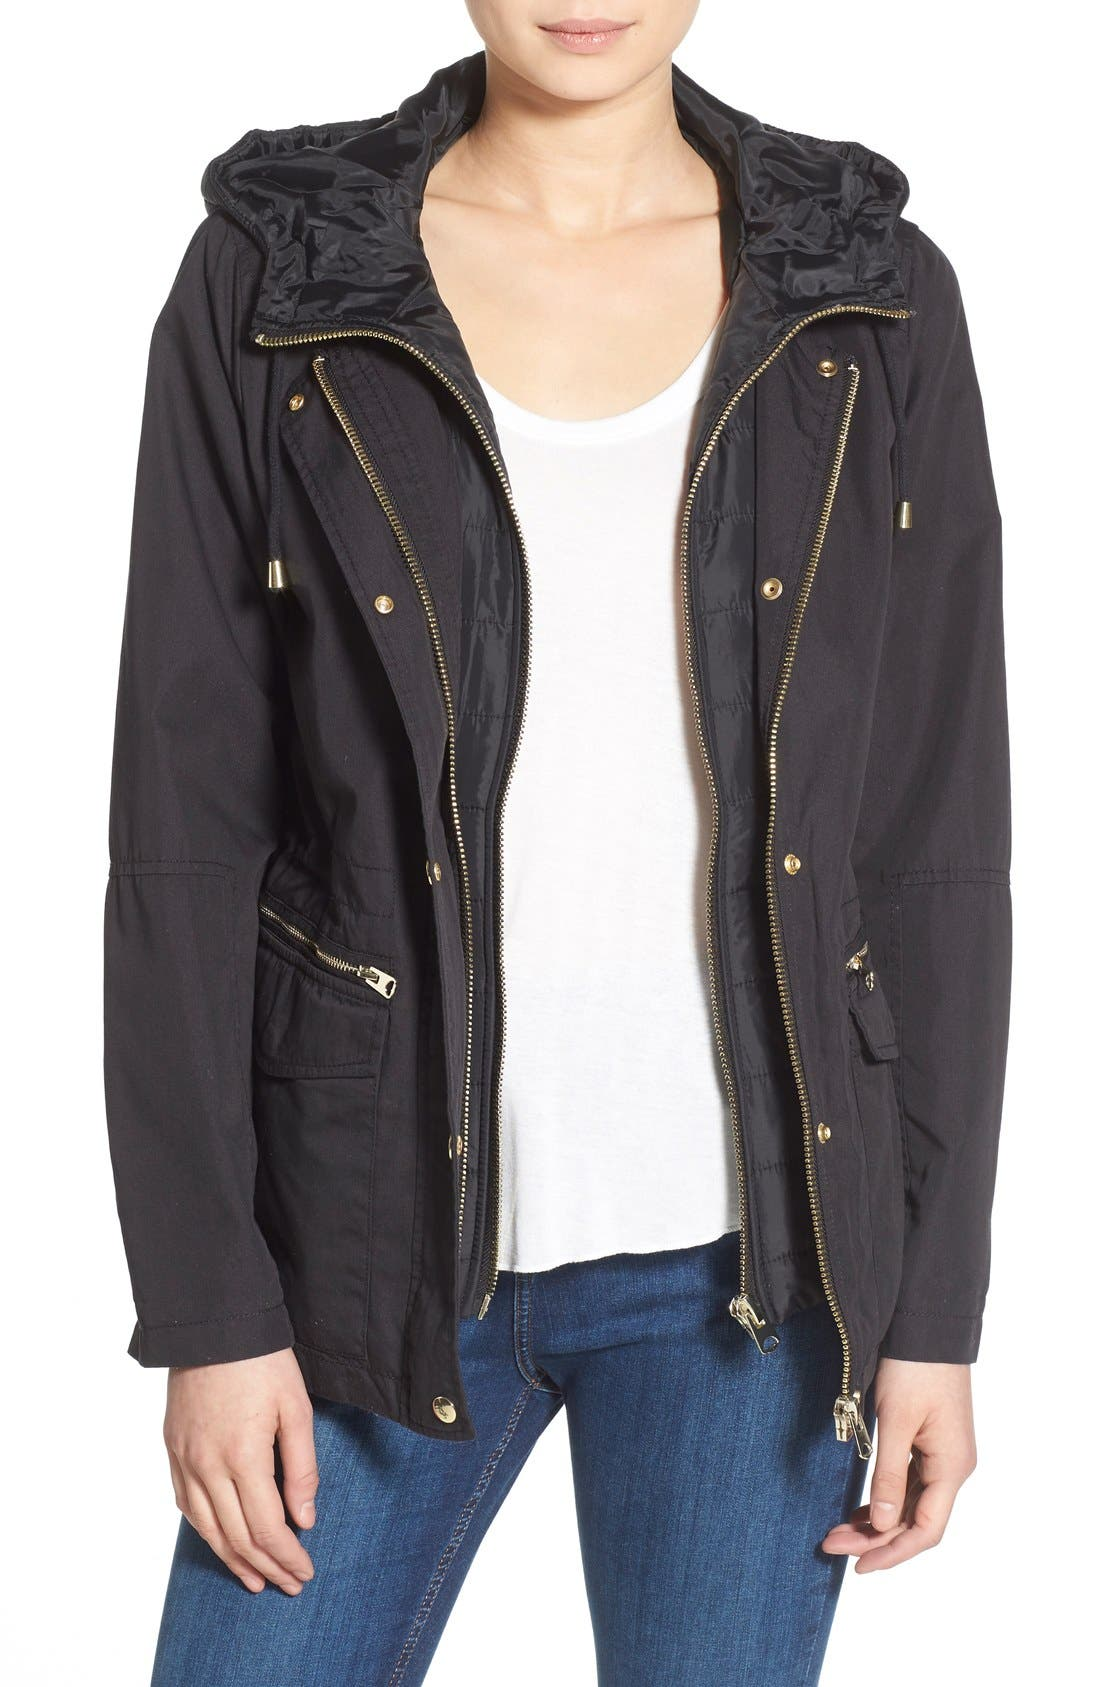 Alternate Image 1 Selected - Topshop 'Kiora' Jacket